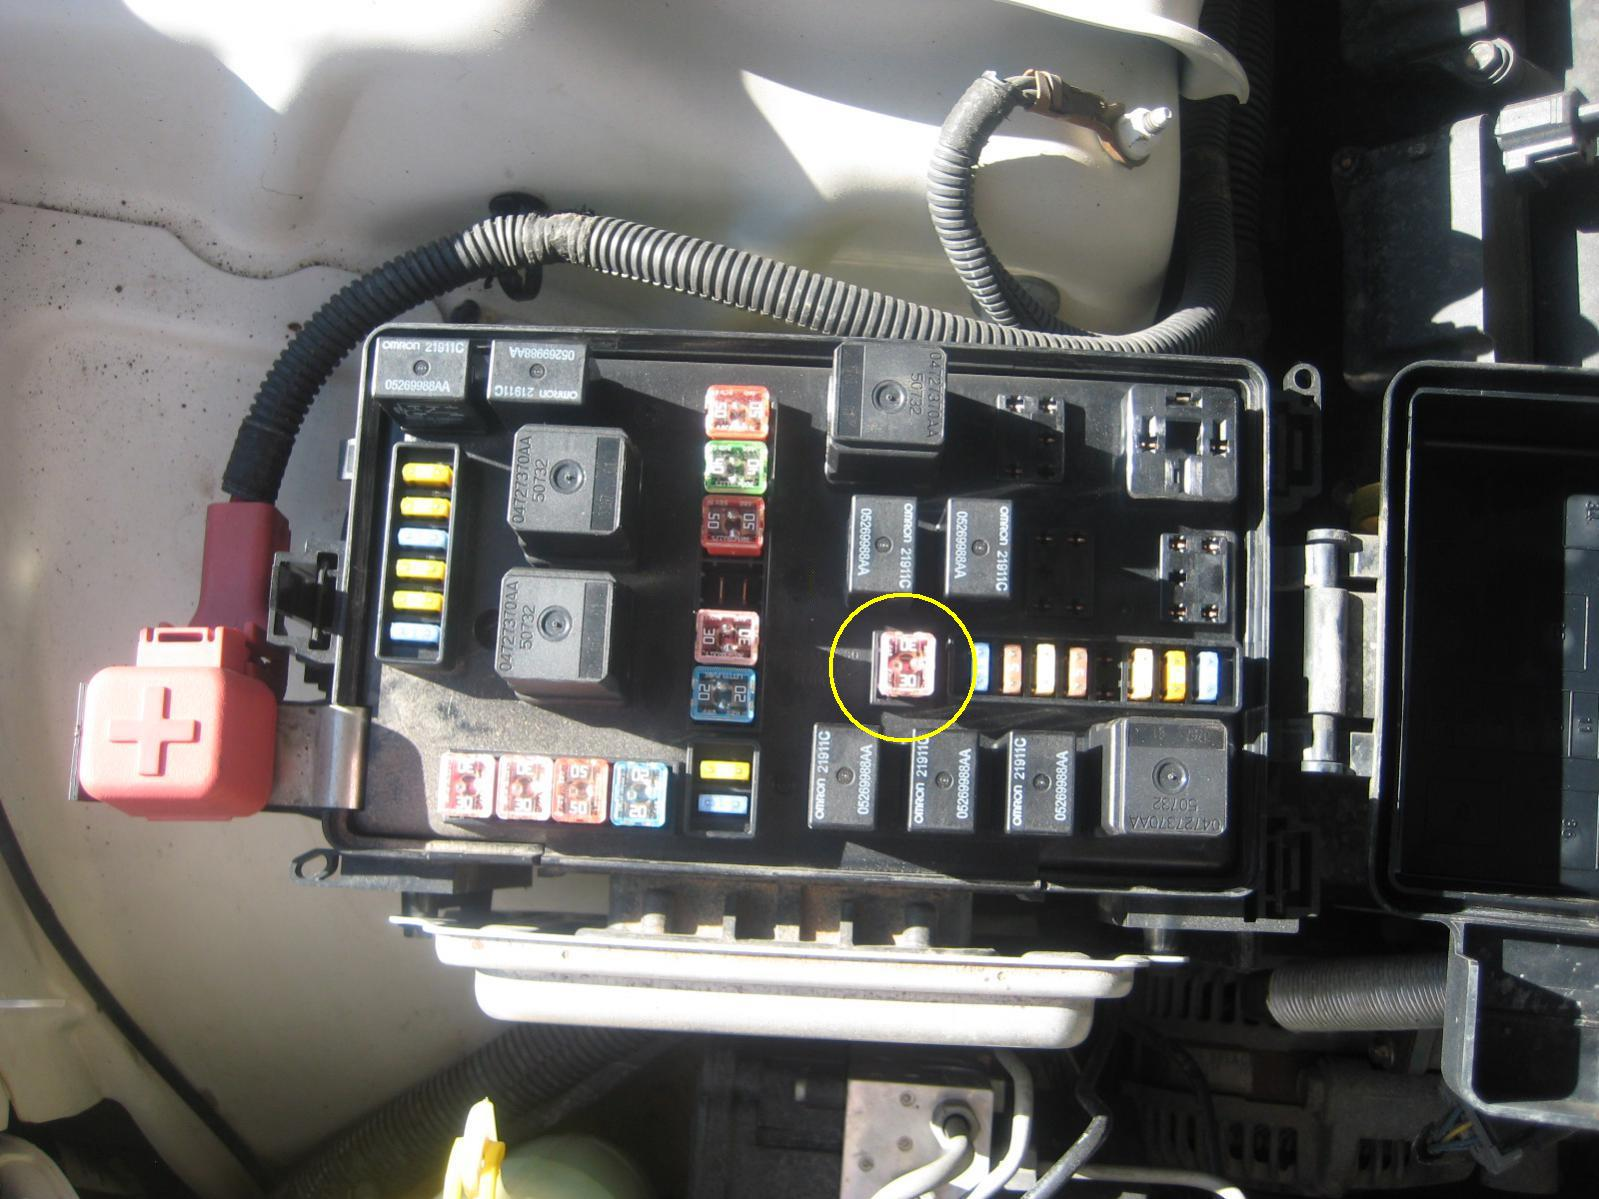 2006 Dodge Charger Fuse Box Location on 2007 Pt Cruiser Heater Core Location